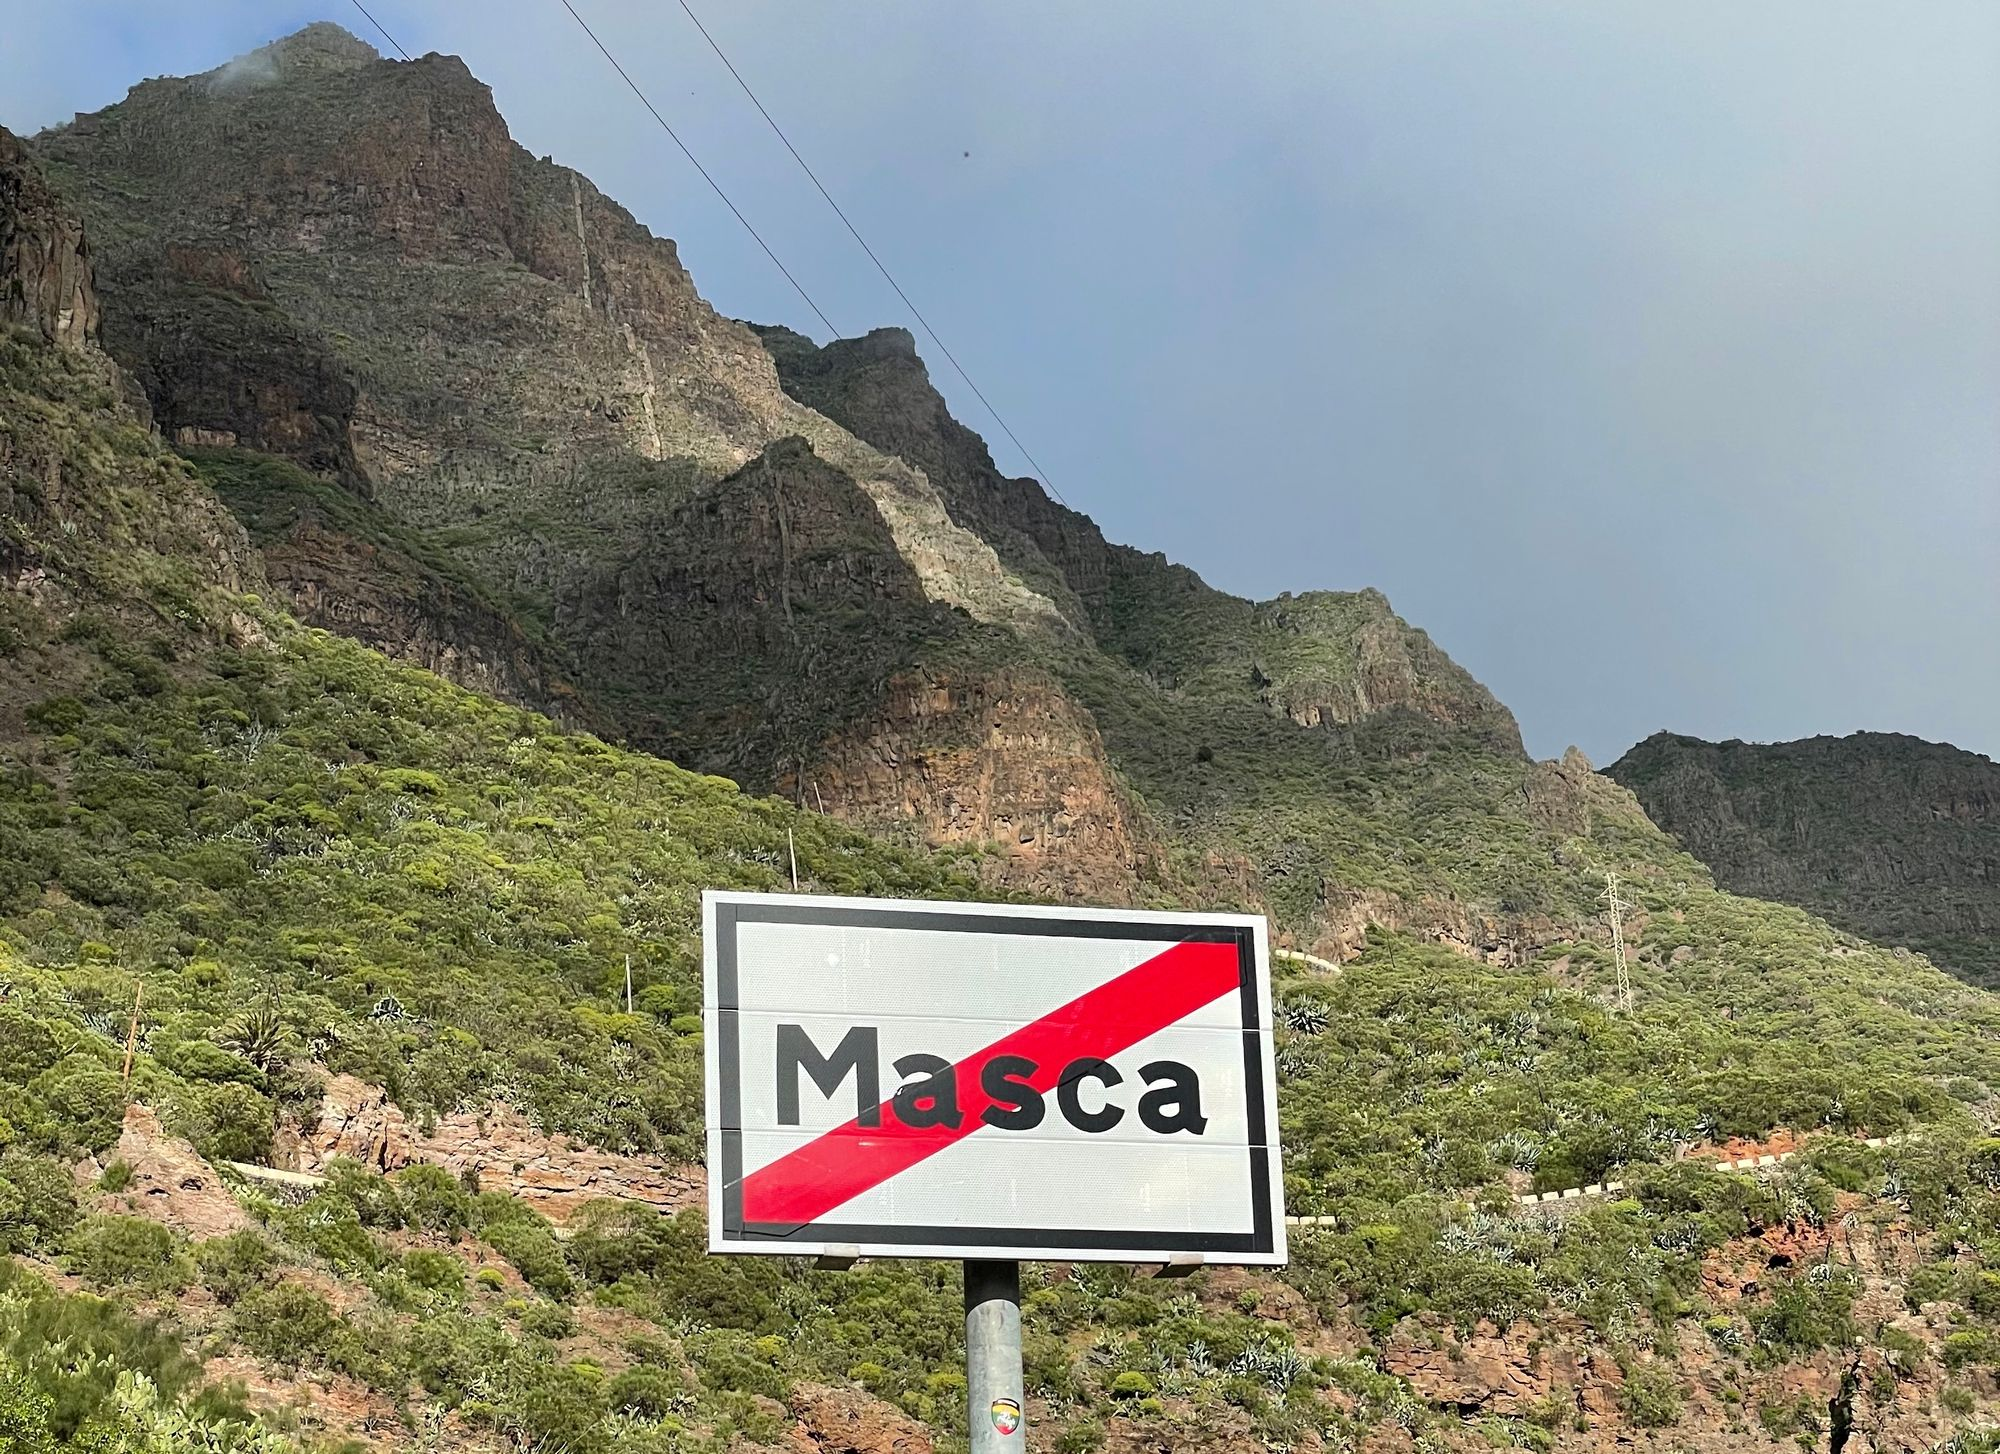 Masca Trail is closed